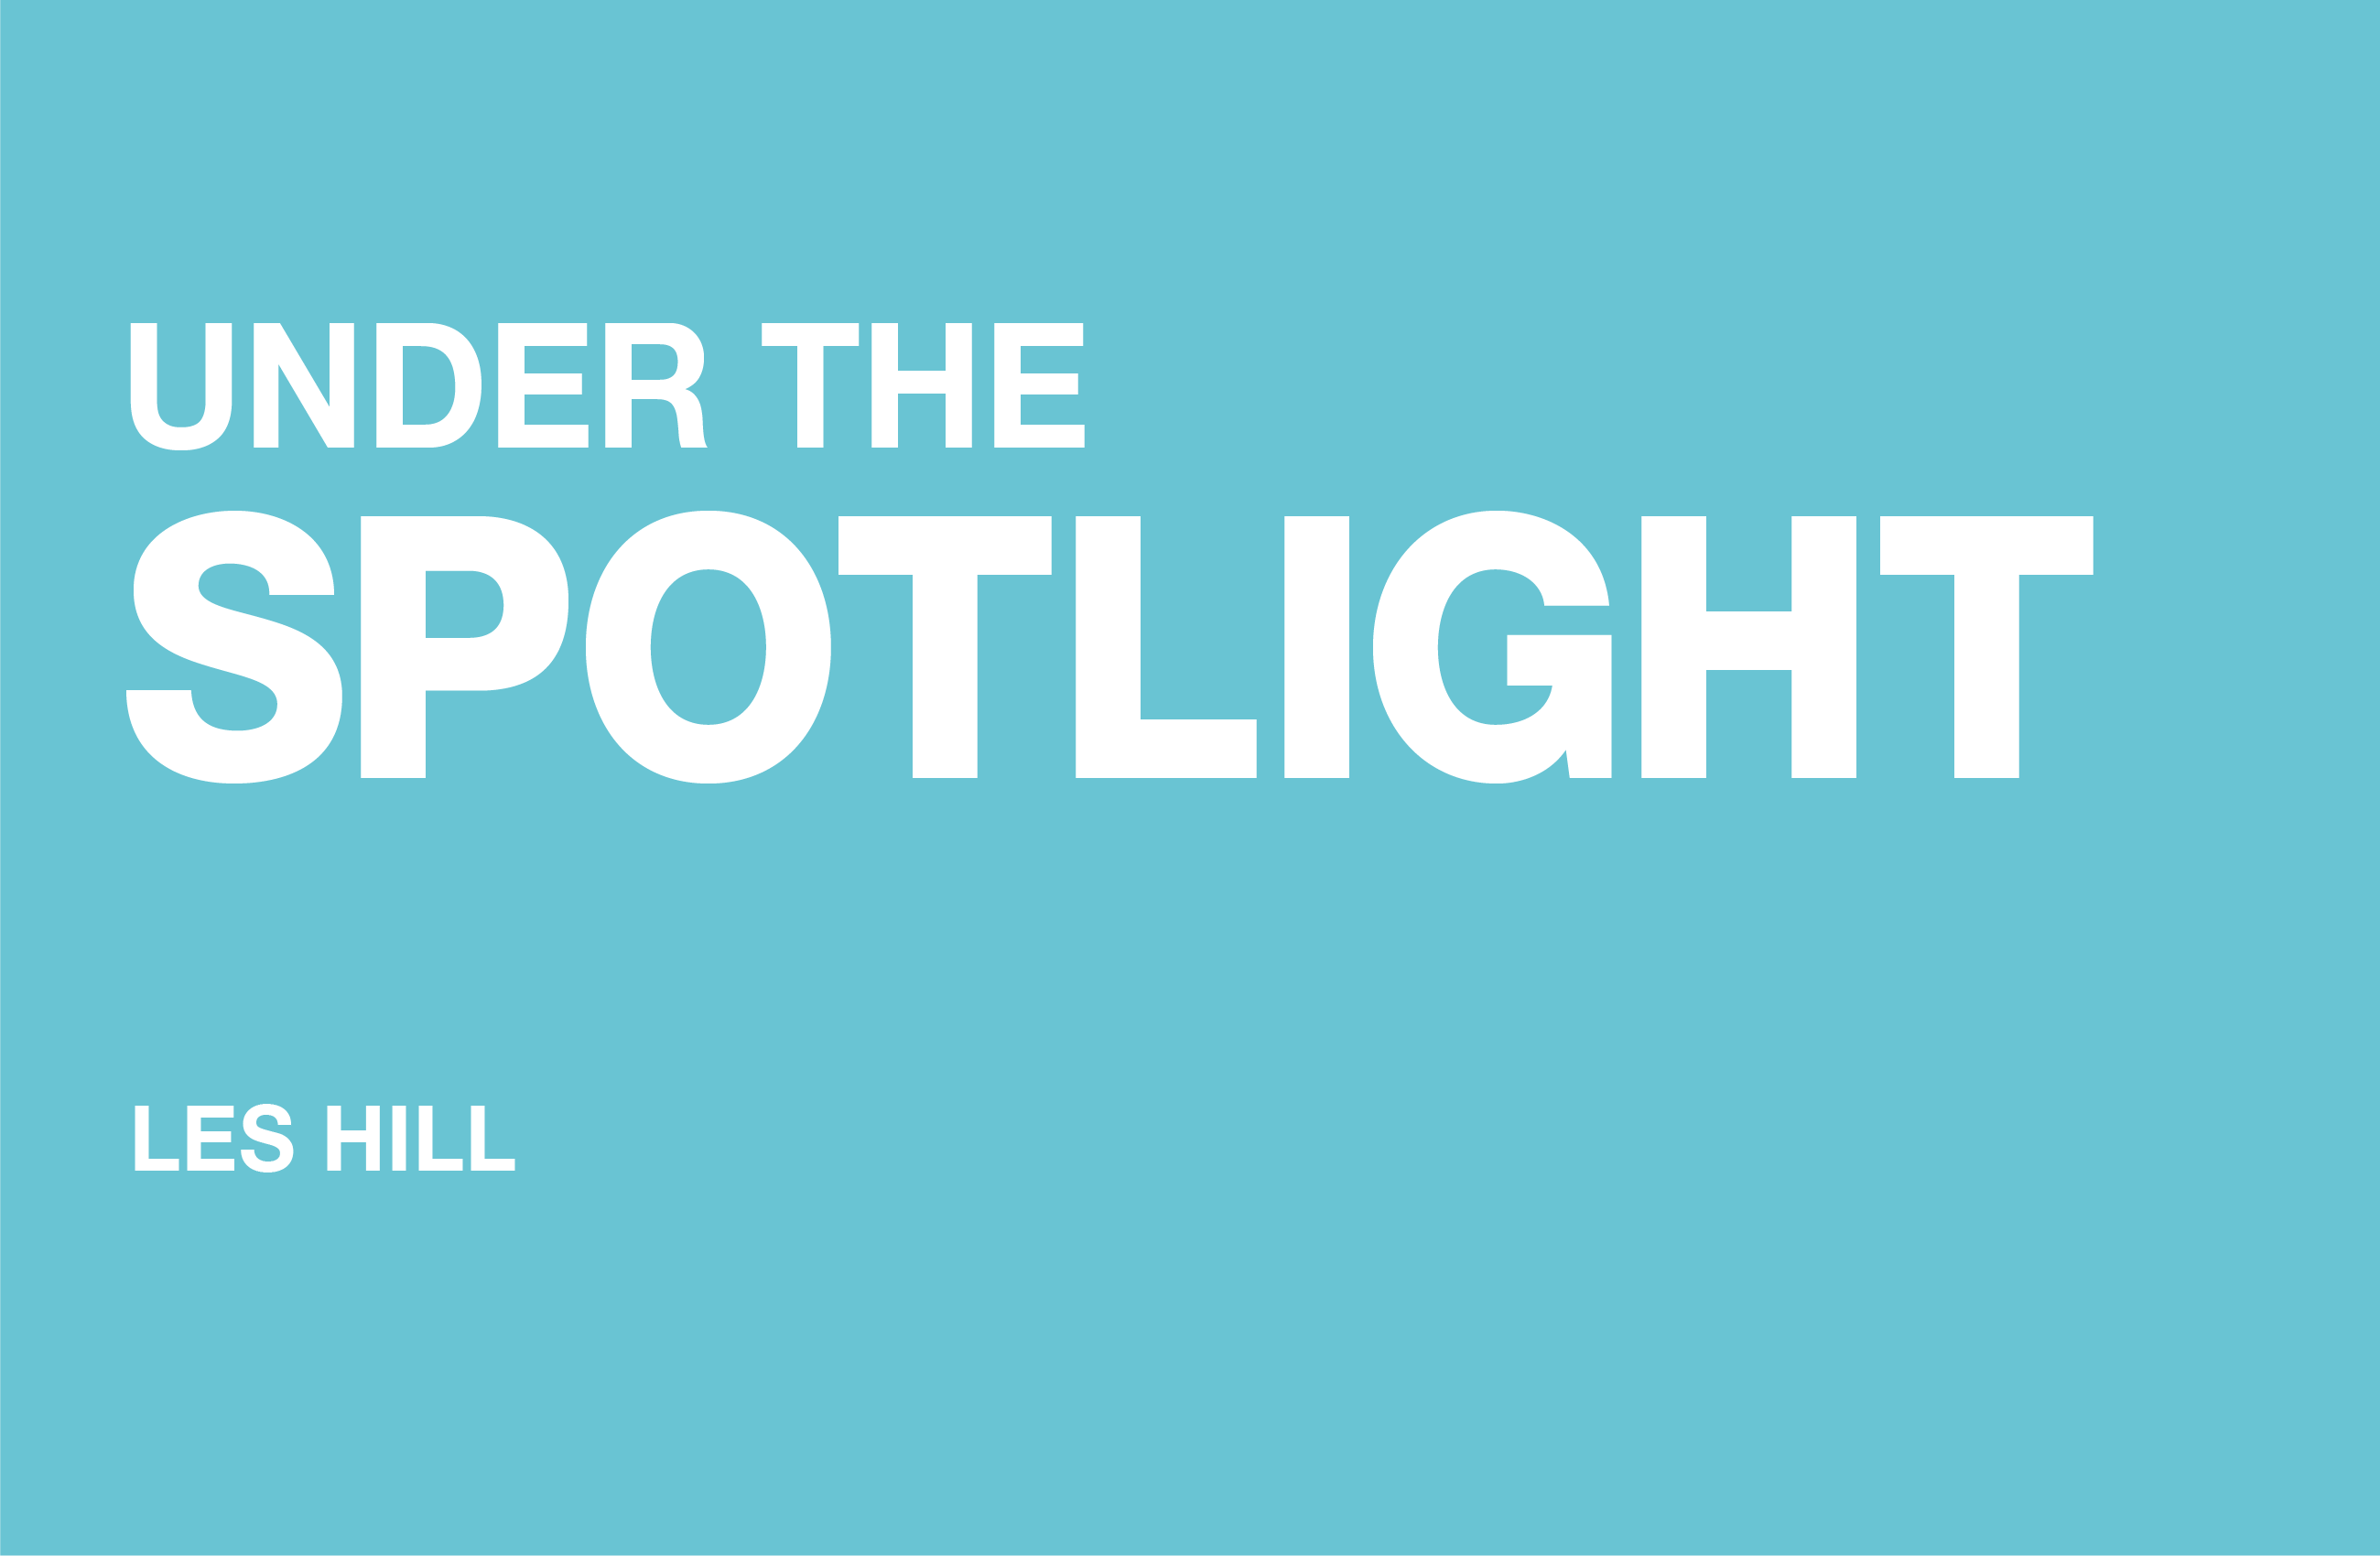 Operations Manager, Les Hill from Dufaylite is under the spotlight